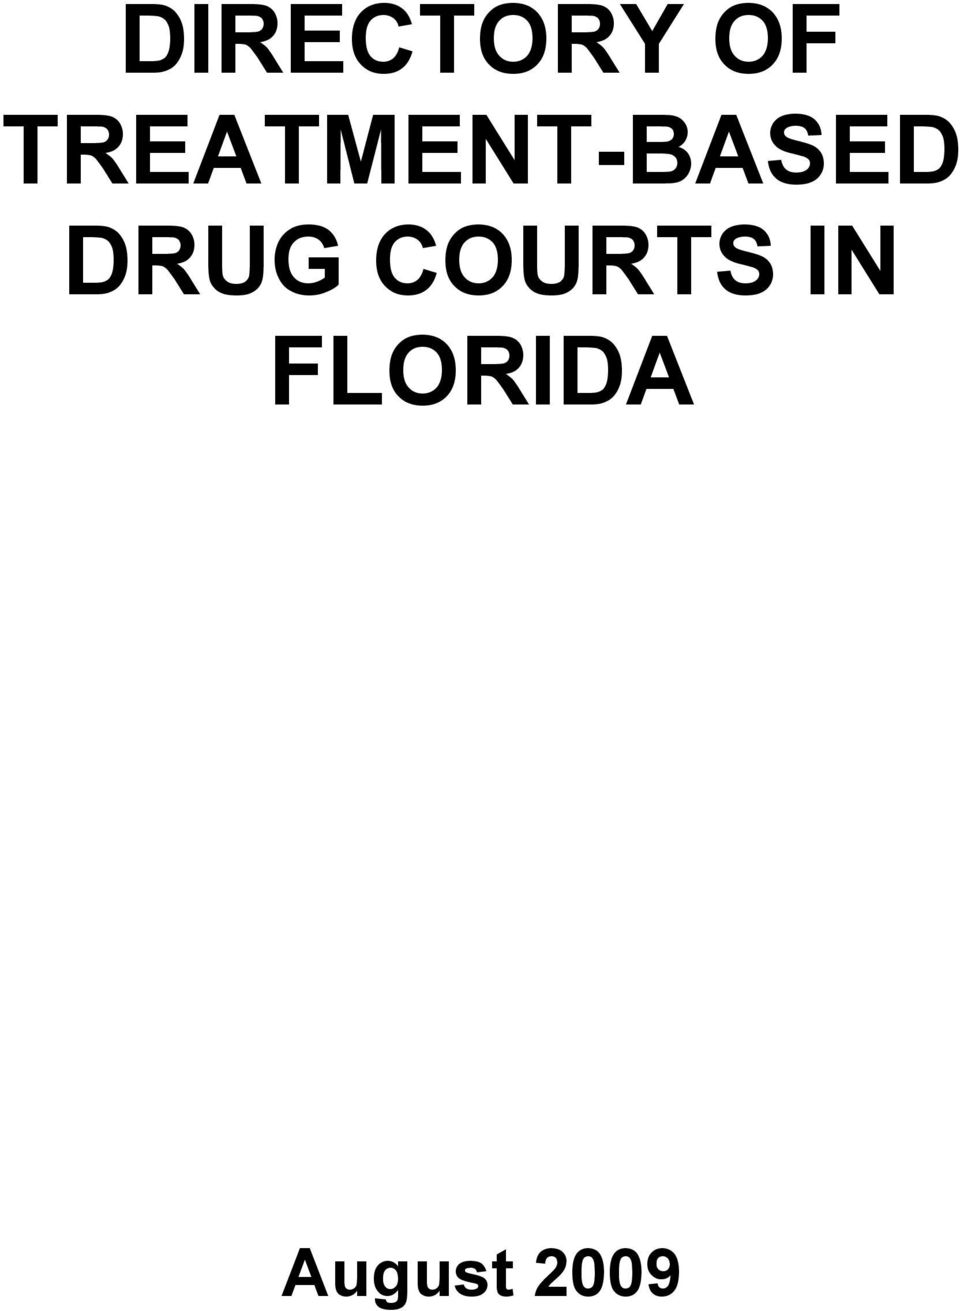 DRUG COURTS IN